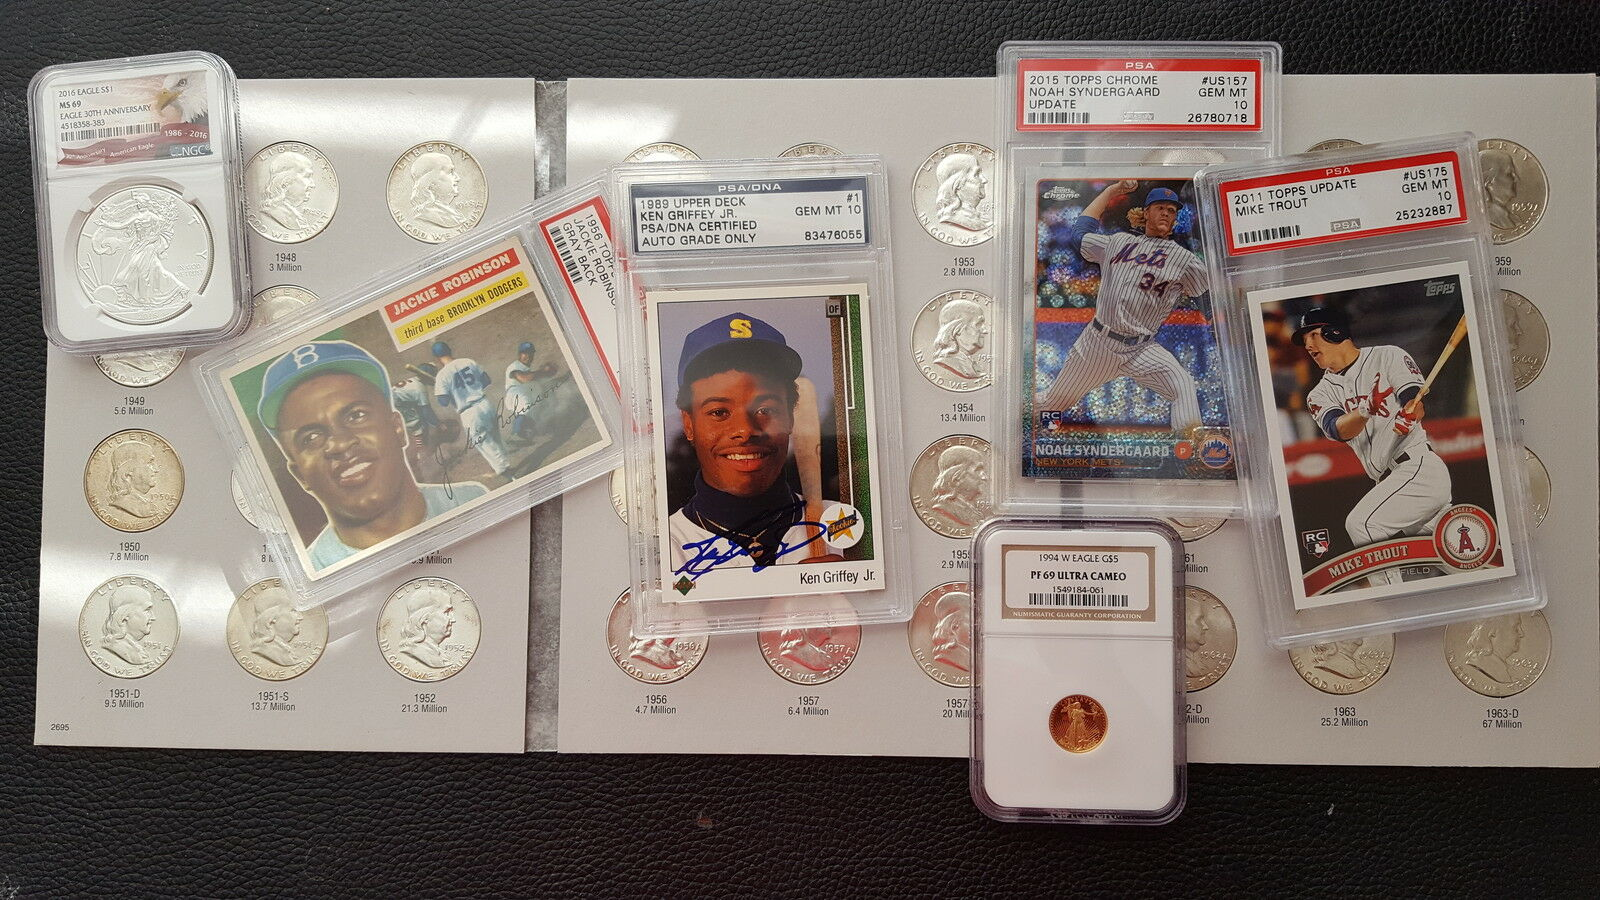 JG's Cards and Collectables